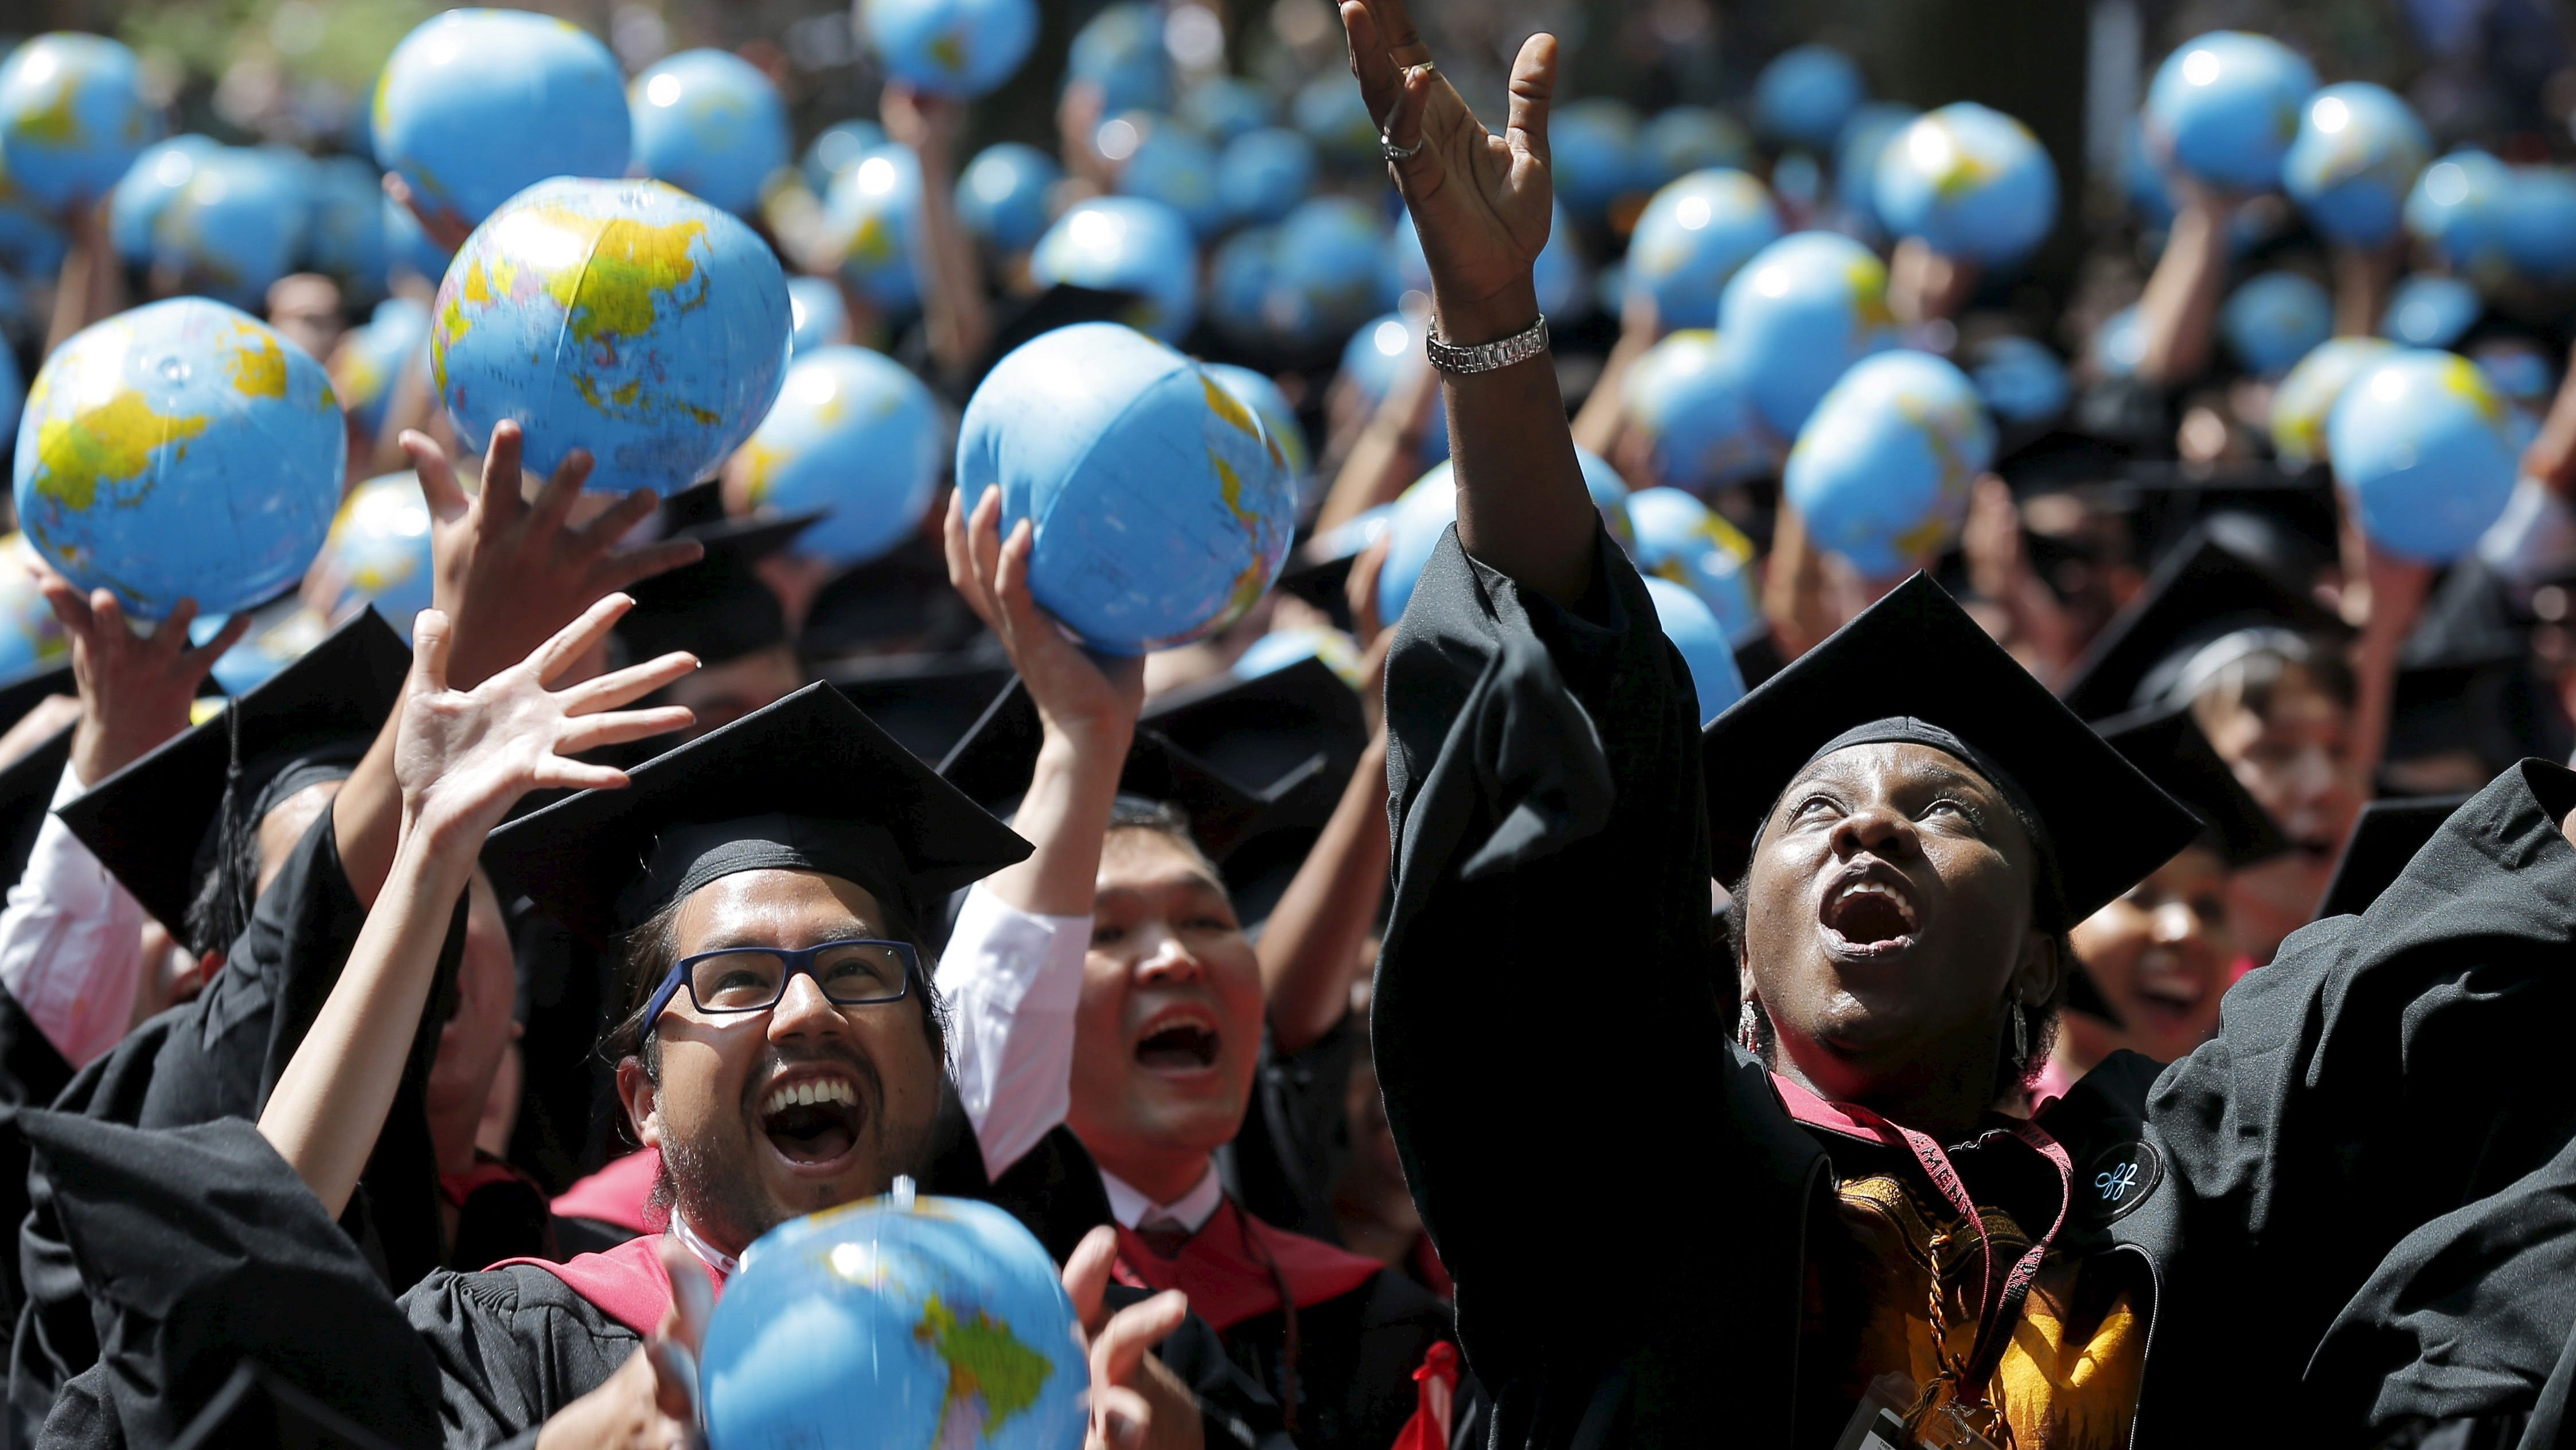 Here are 300 free Ivy League university courses you can take online right now